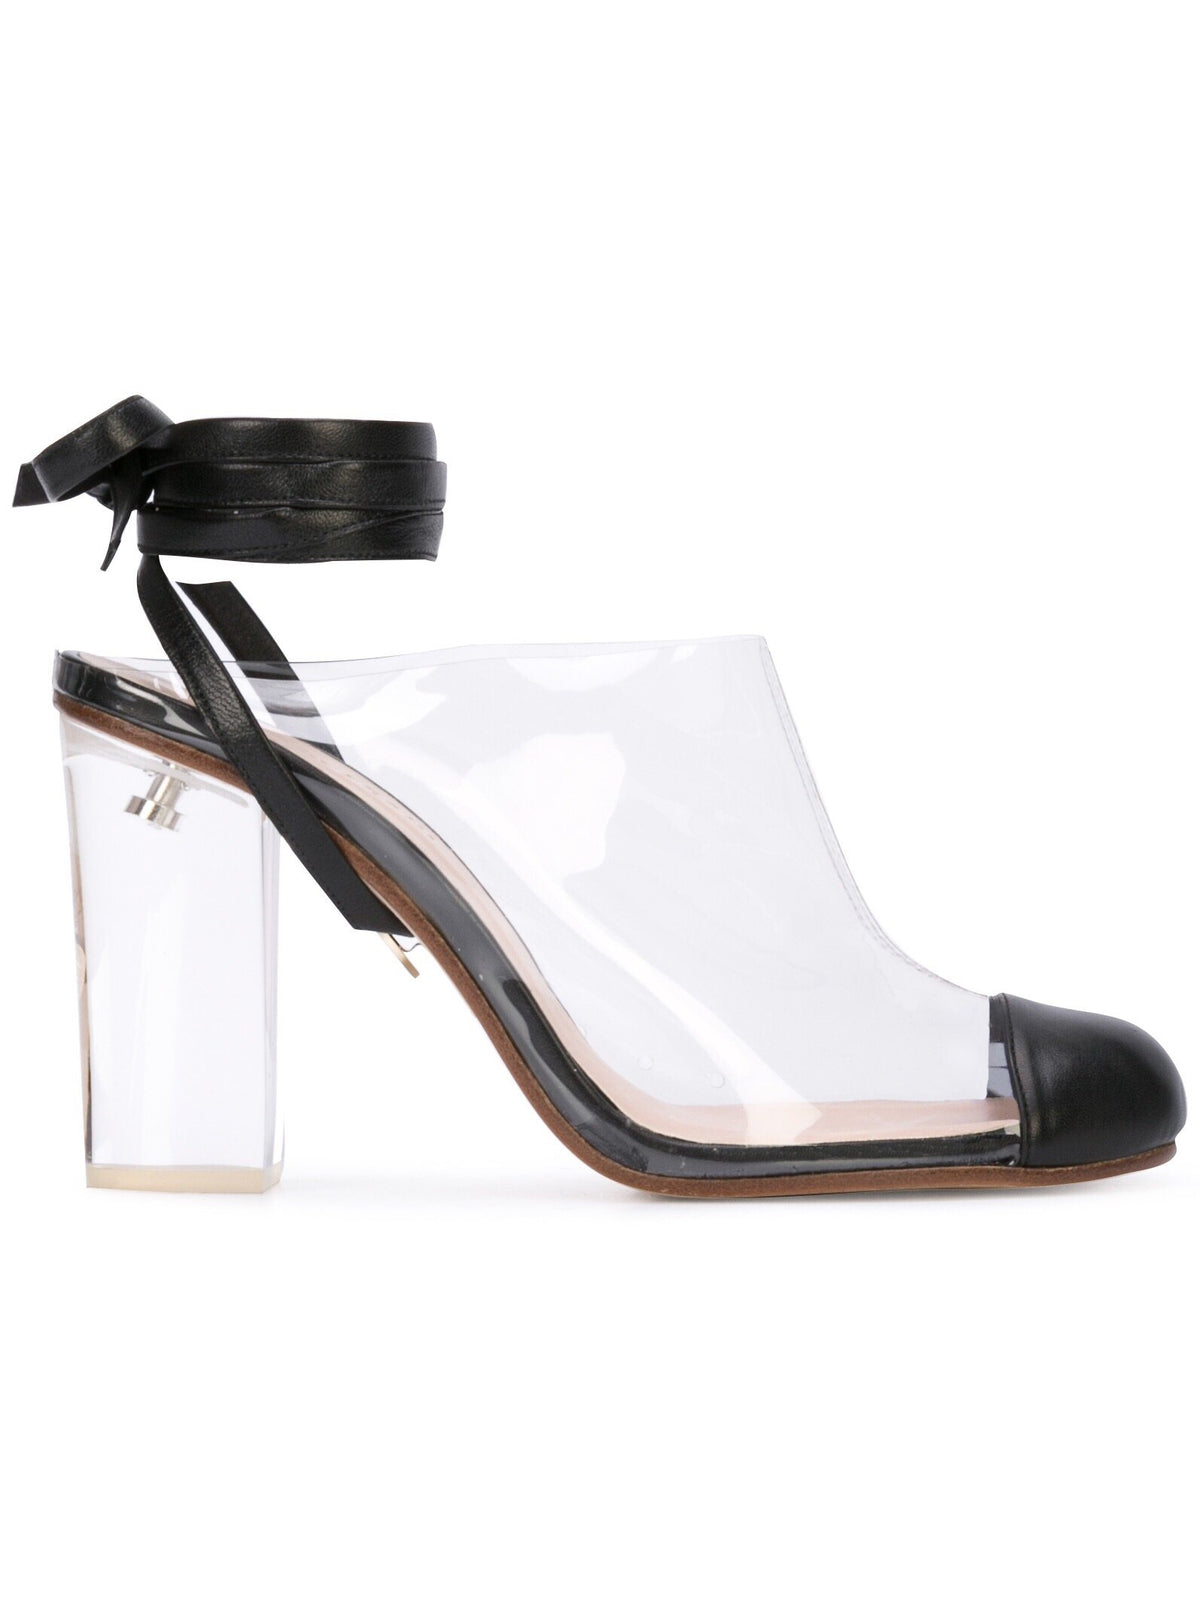 Grease Mule - Pvc and black nappa leather mule, acrylic heel and removable wraps. Profile View